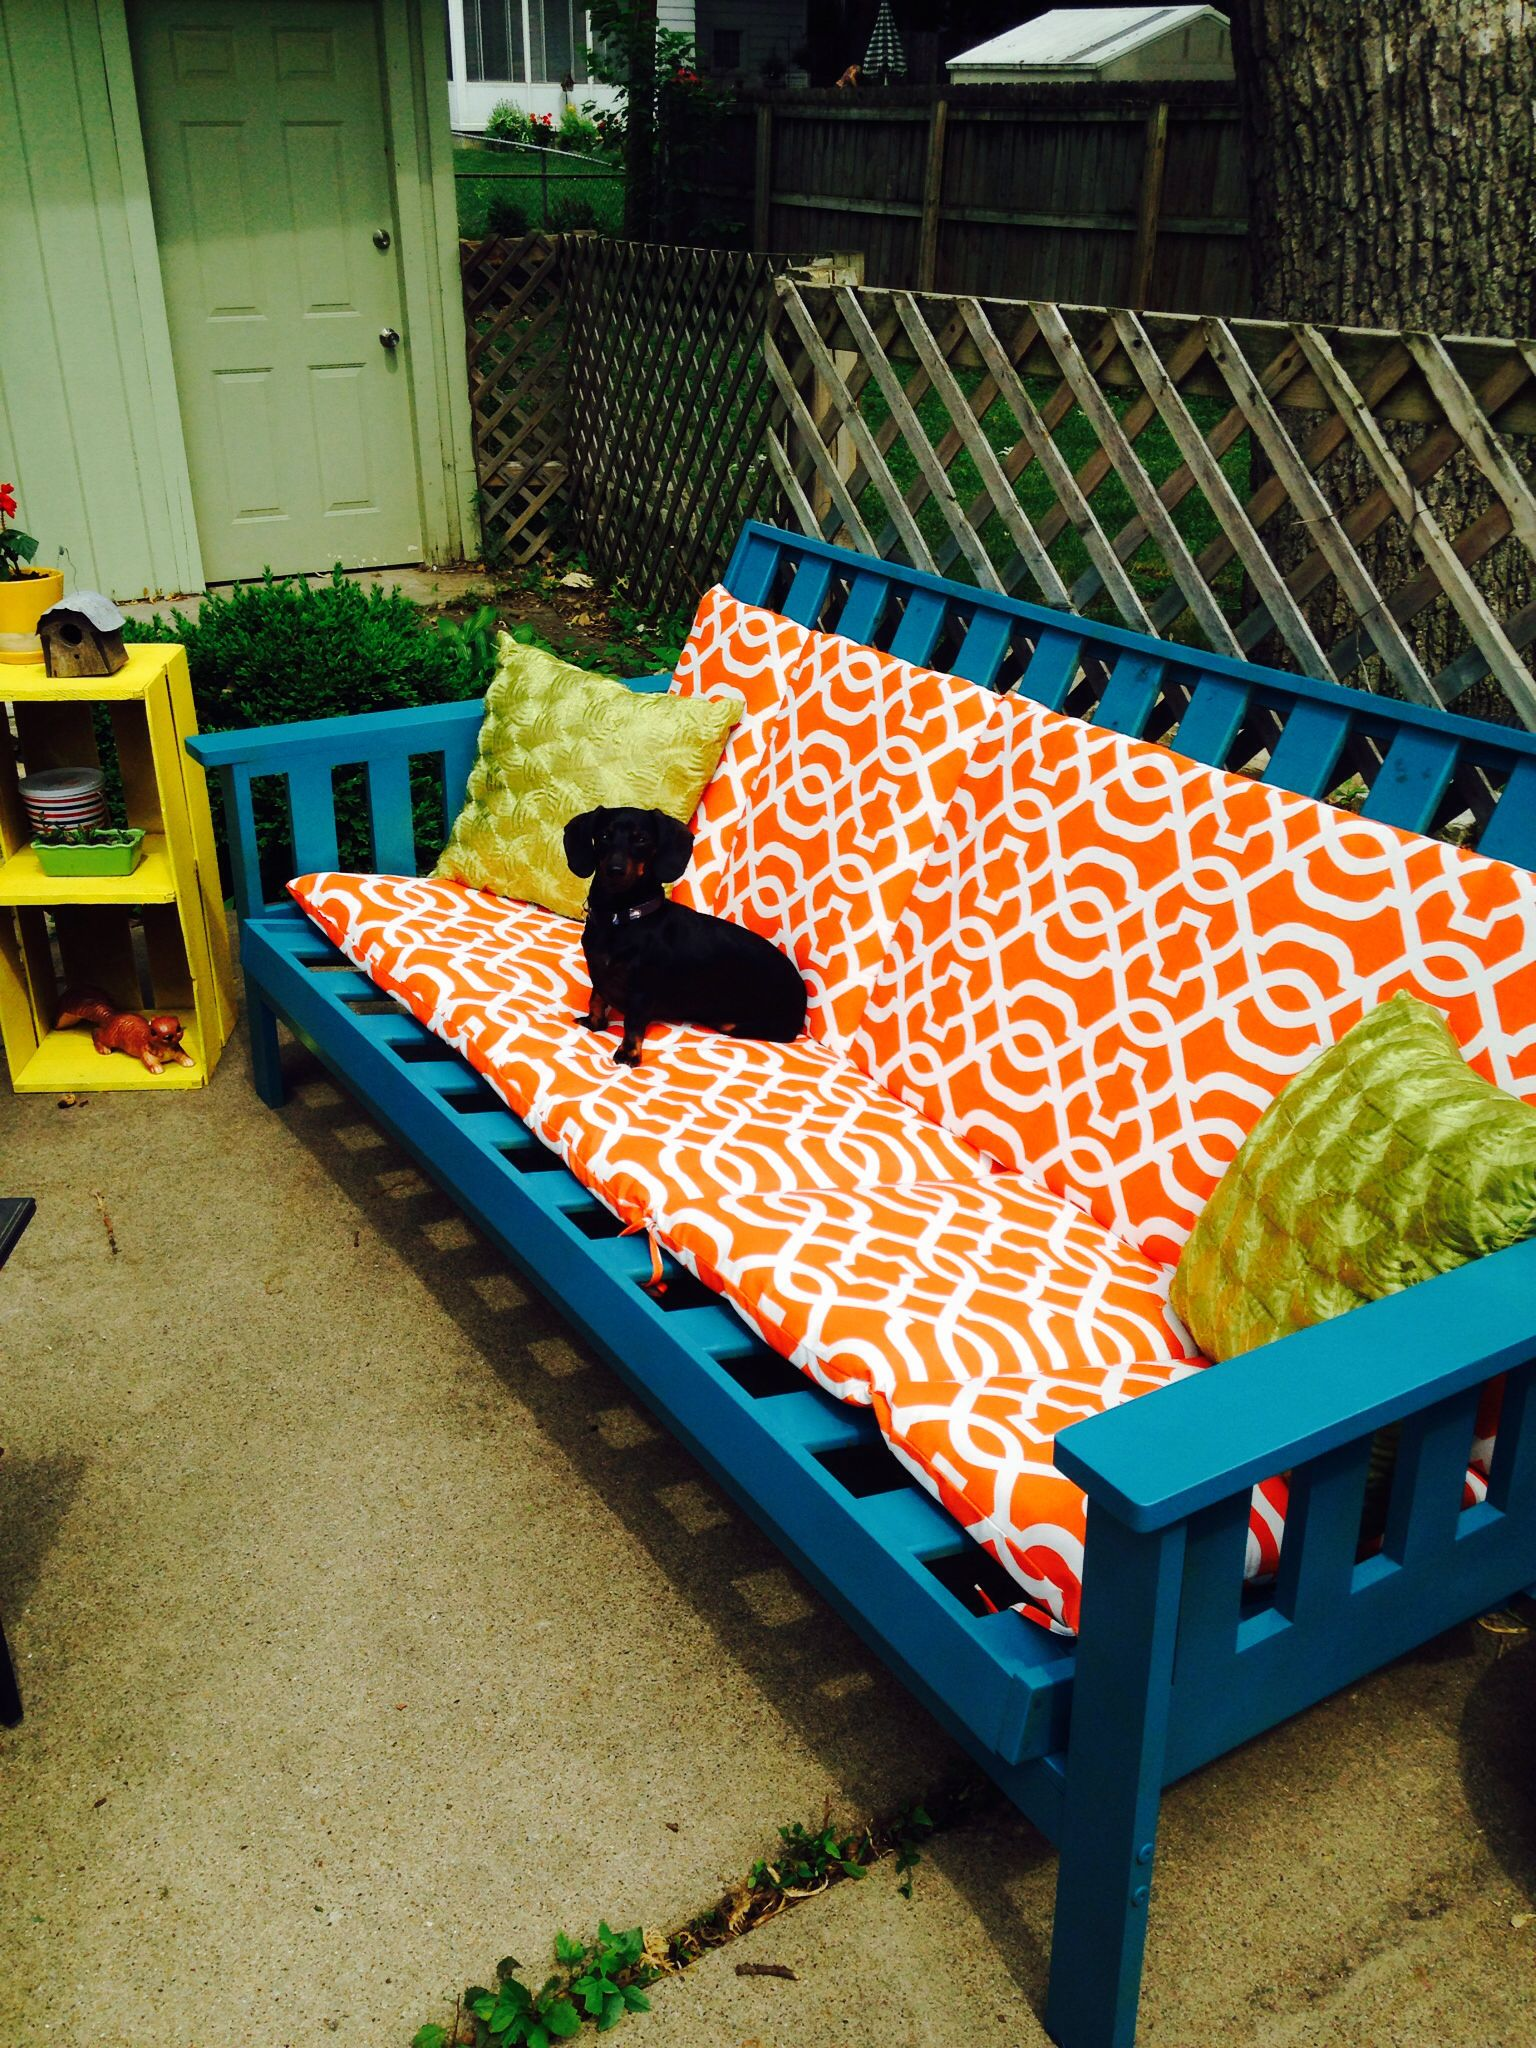 Old Futon Frame~ Weatherproof Spray Paint And Outdoor Cushionsu003d New Patio  Furniture! Part 66